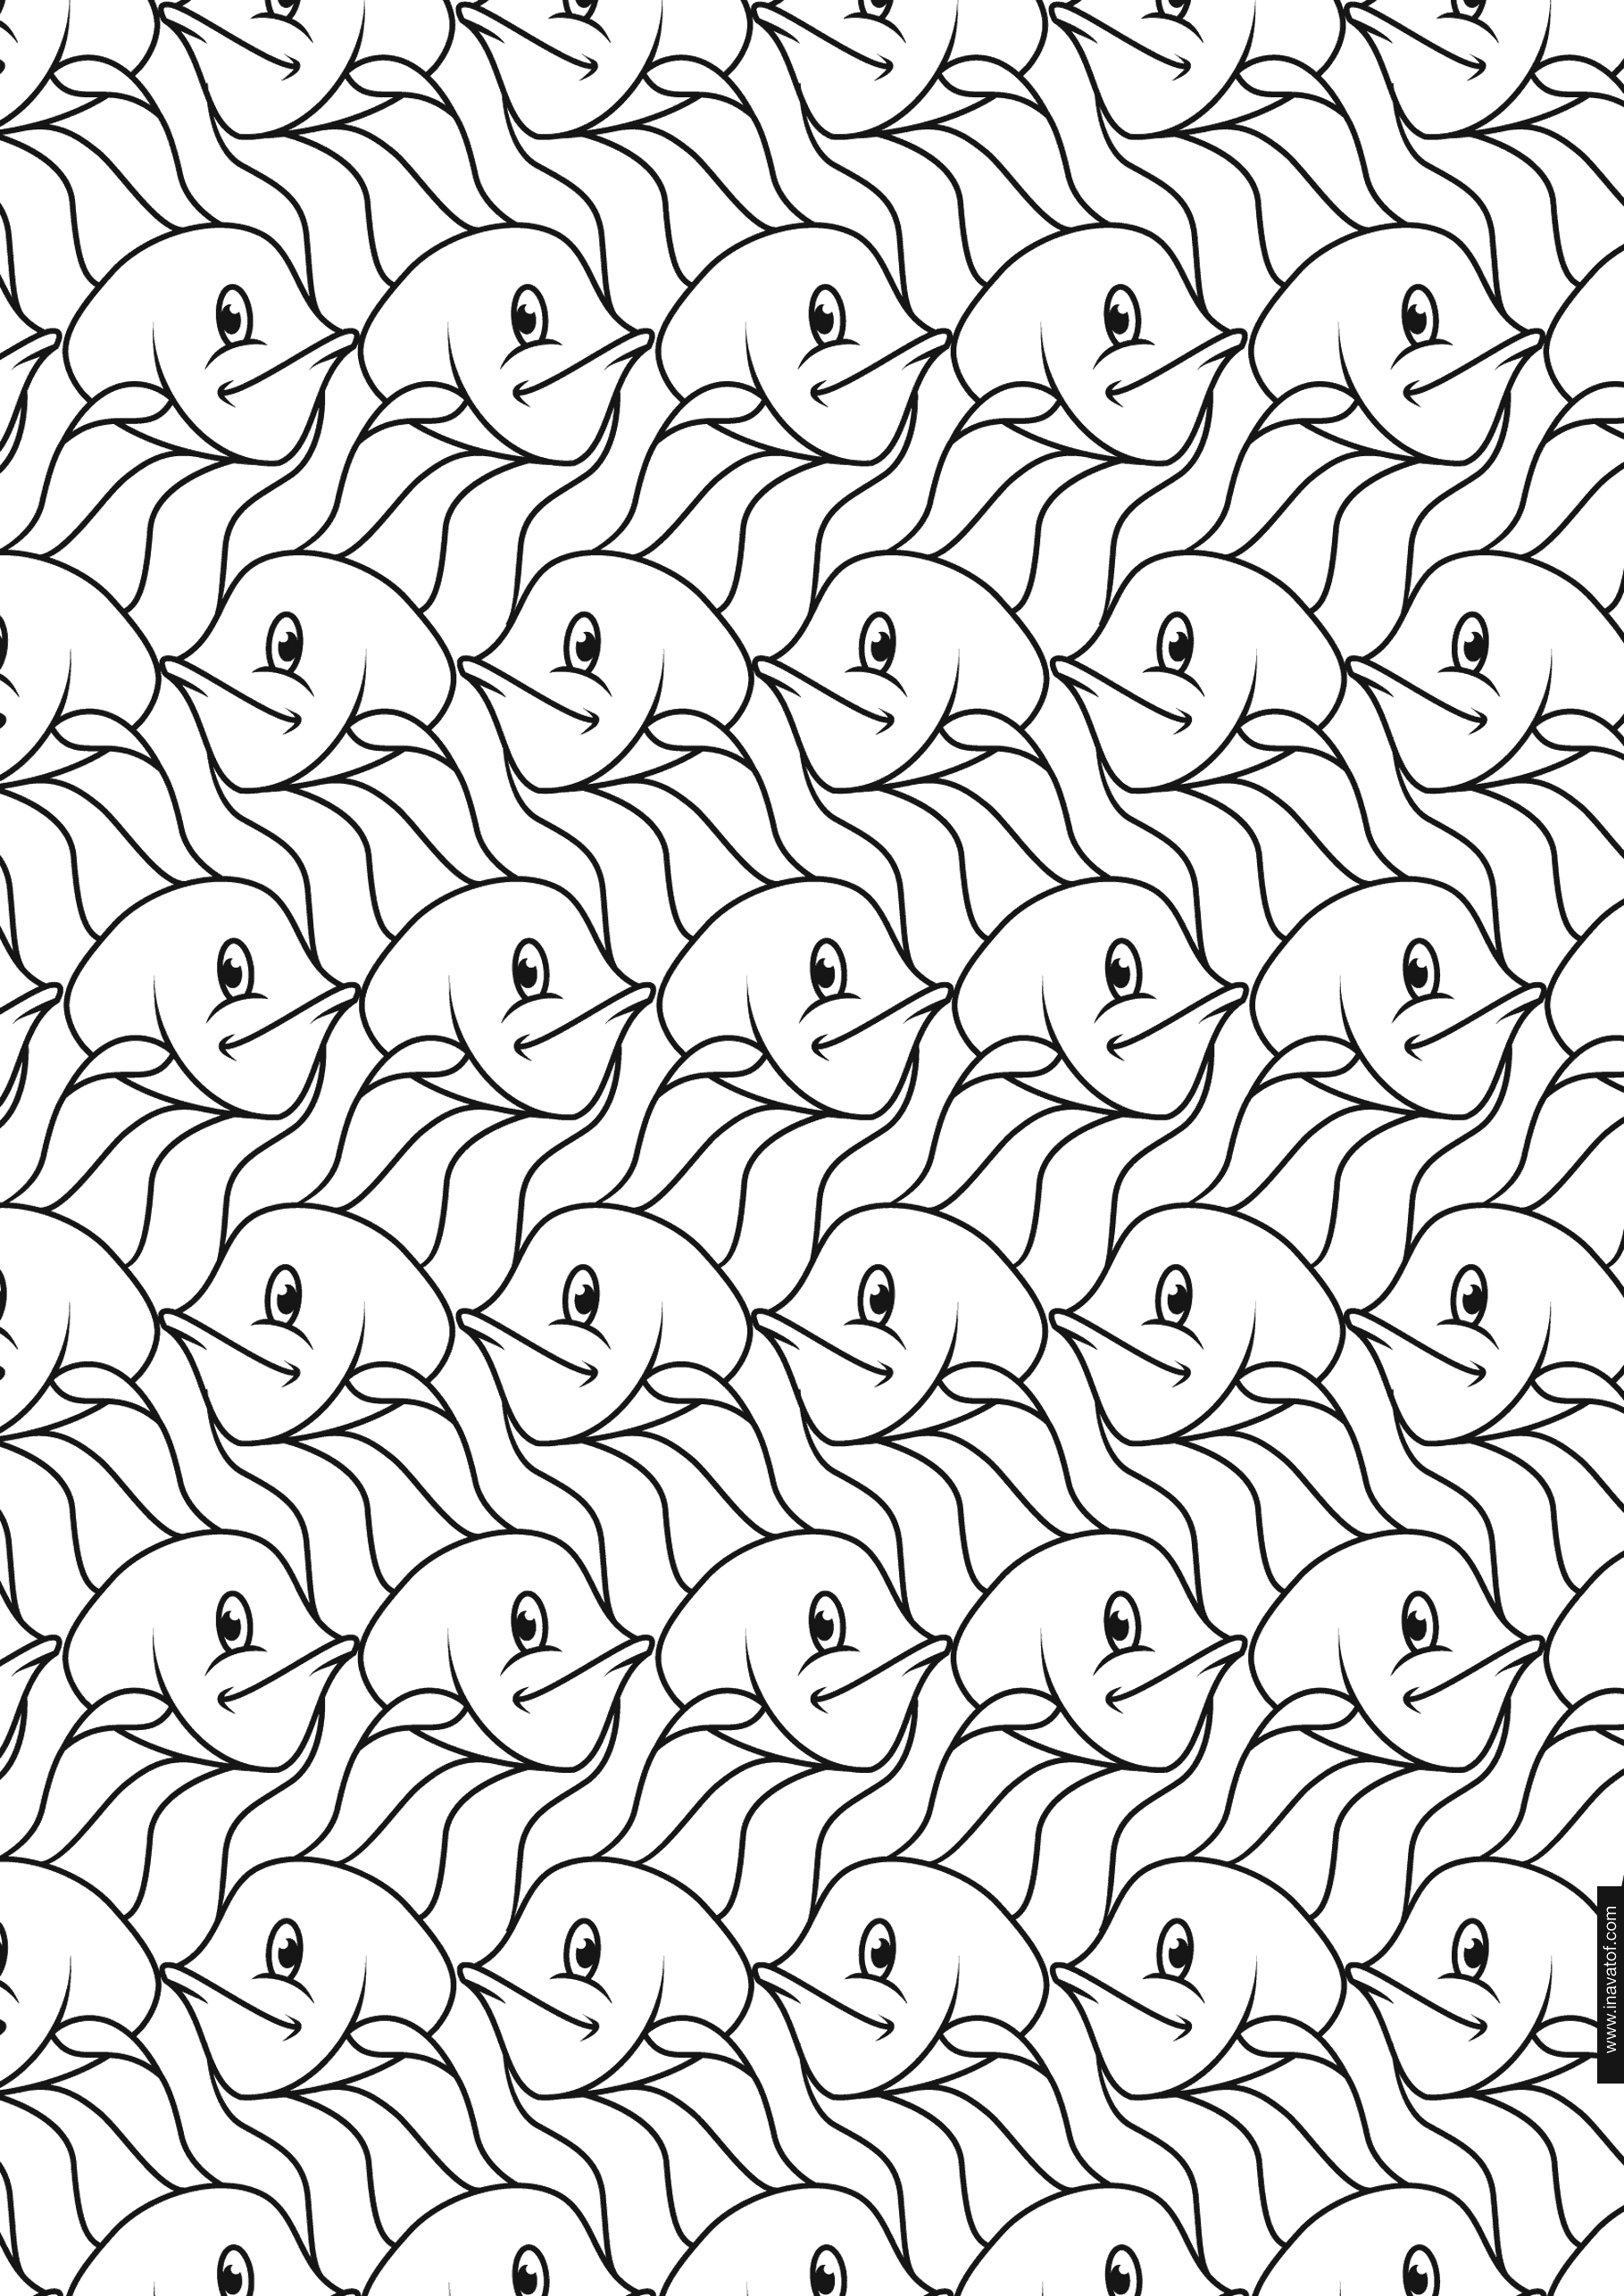 Worksheets Tessellation Worksheets To Color 1000 images about math tessellations on pinterest